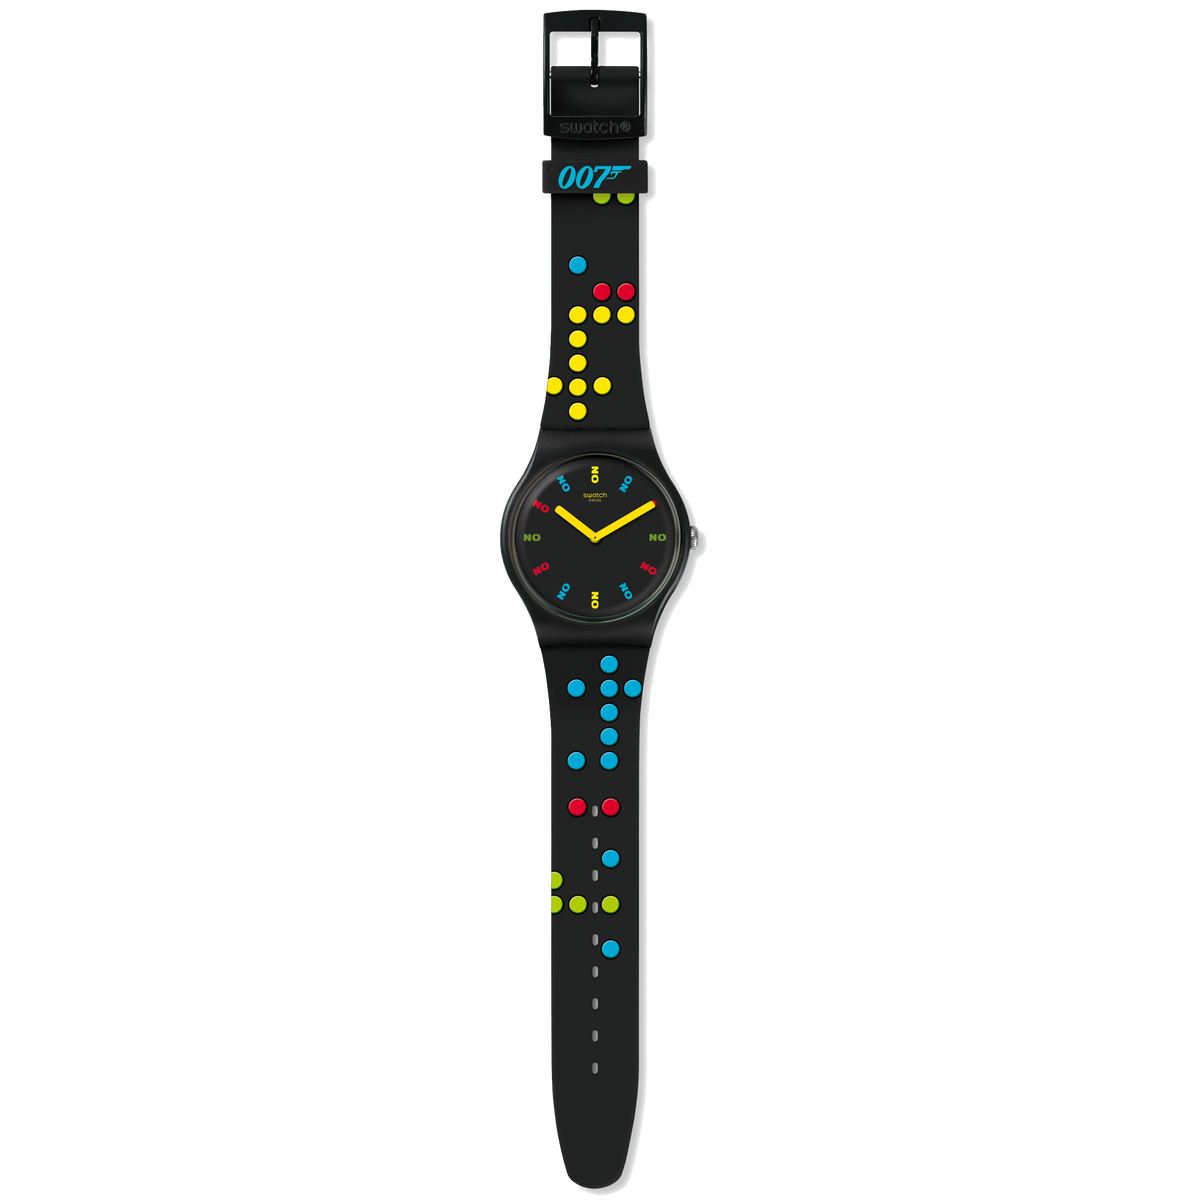 Swatch Watch - 007 Edition - Dr No 1962